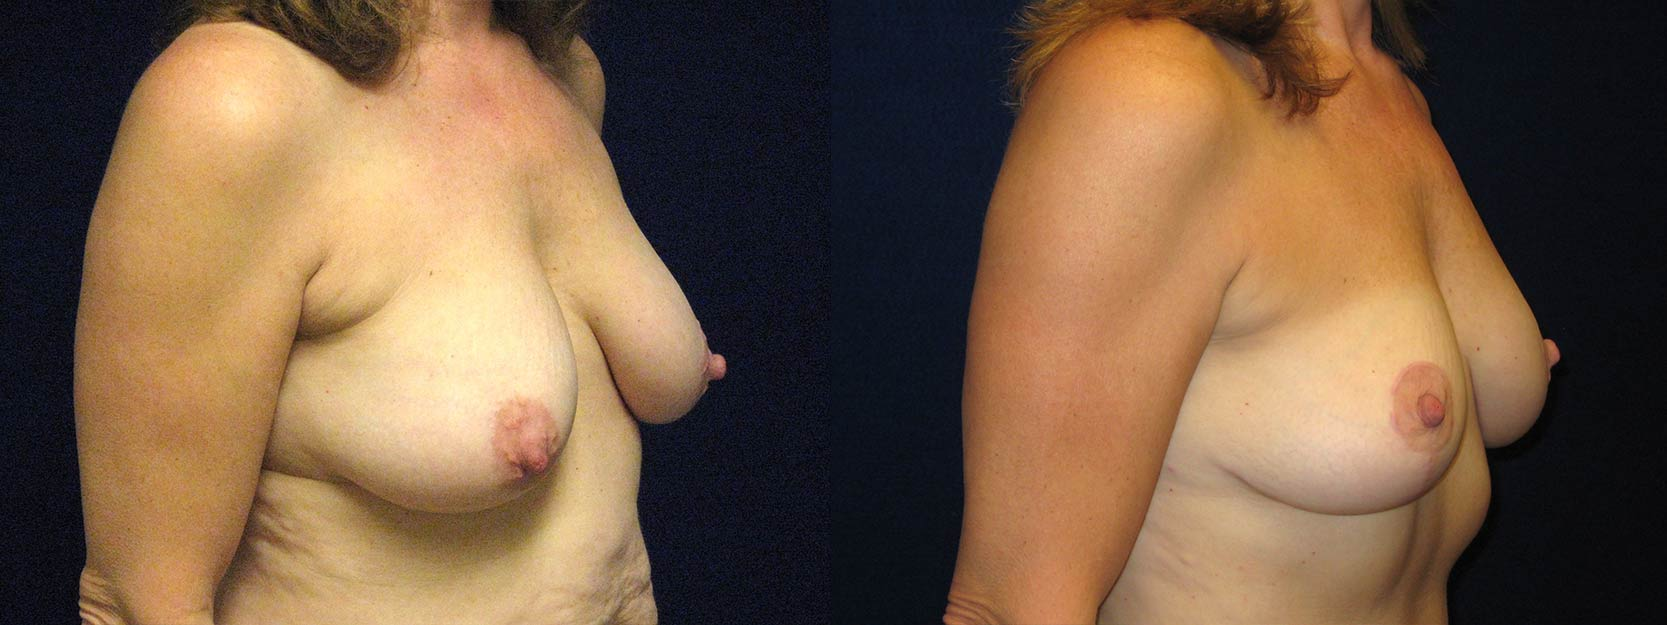 Right 3/4 View - Breast Lift After Pregnancy